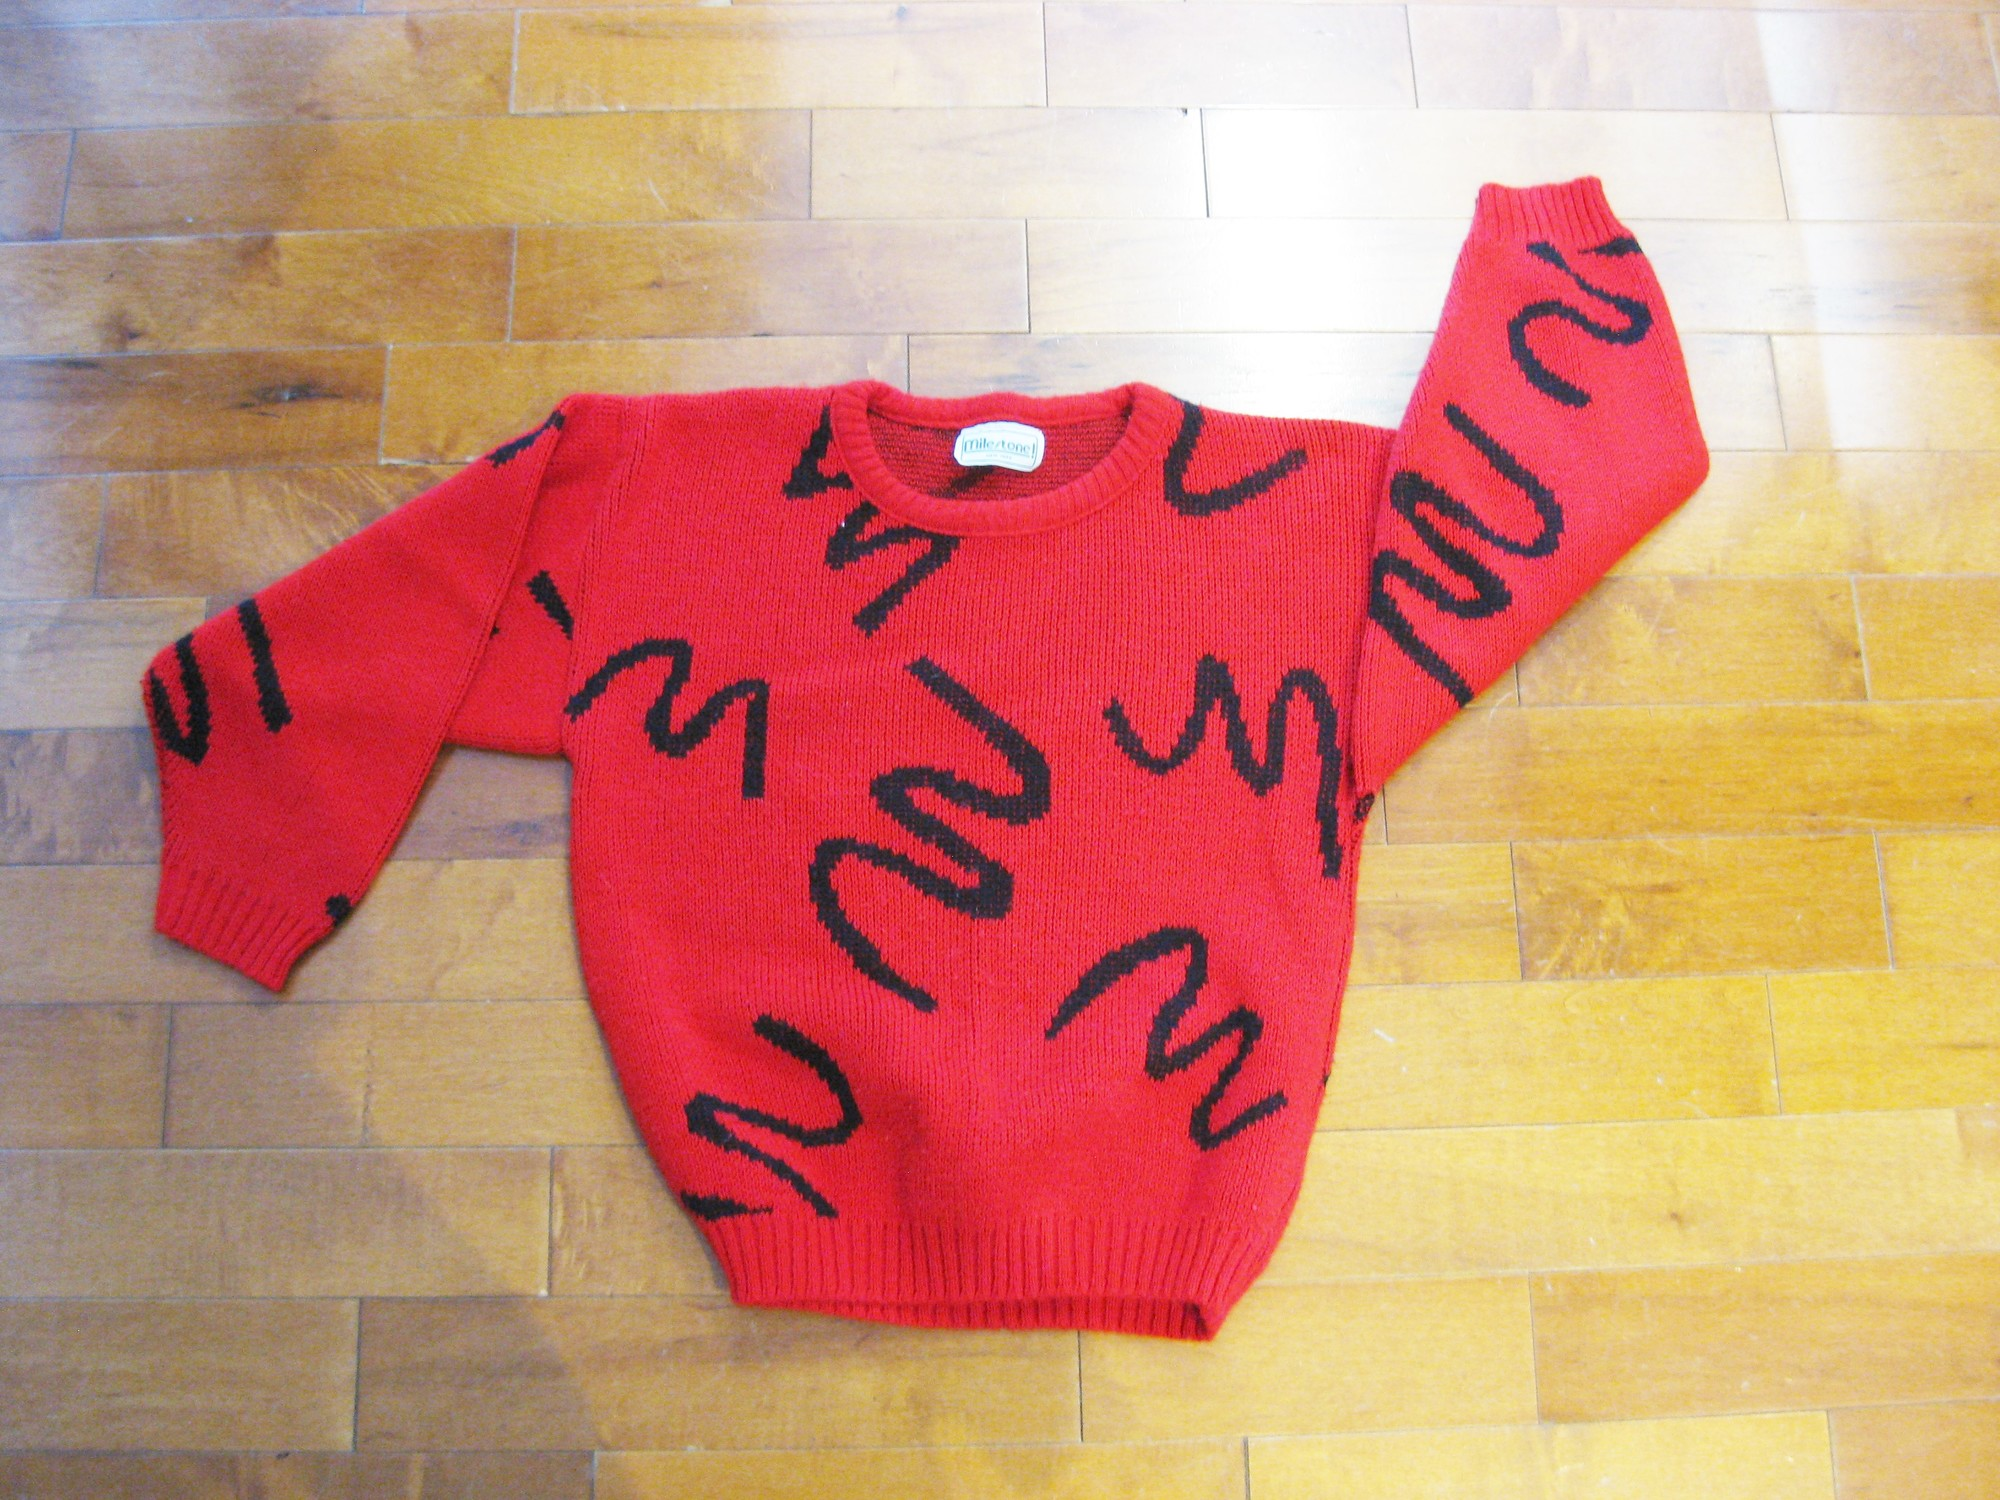 This red and black graphic sweater is so fun.<br /> Abstract black squiggles on a red background<br /> It's made of acrylic and machine washable.<br /> It's rather lightweight<br /> Pulls over the head<br /> <br /> Here are the flat measurements, please double where appropriate:<br /> Shoulder to shoulder: 19.5in<br /> Armpit to armpit: 19in<br /> Width at hem: 15 1/2in<br /> Underarm sleeve seam length: 17in<br /> Overall length: 21.5in<br /> <br /> Thanks for looking.<br /> #18038